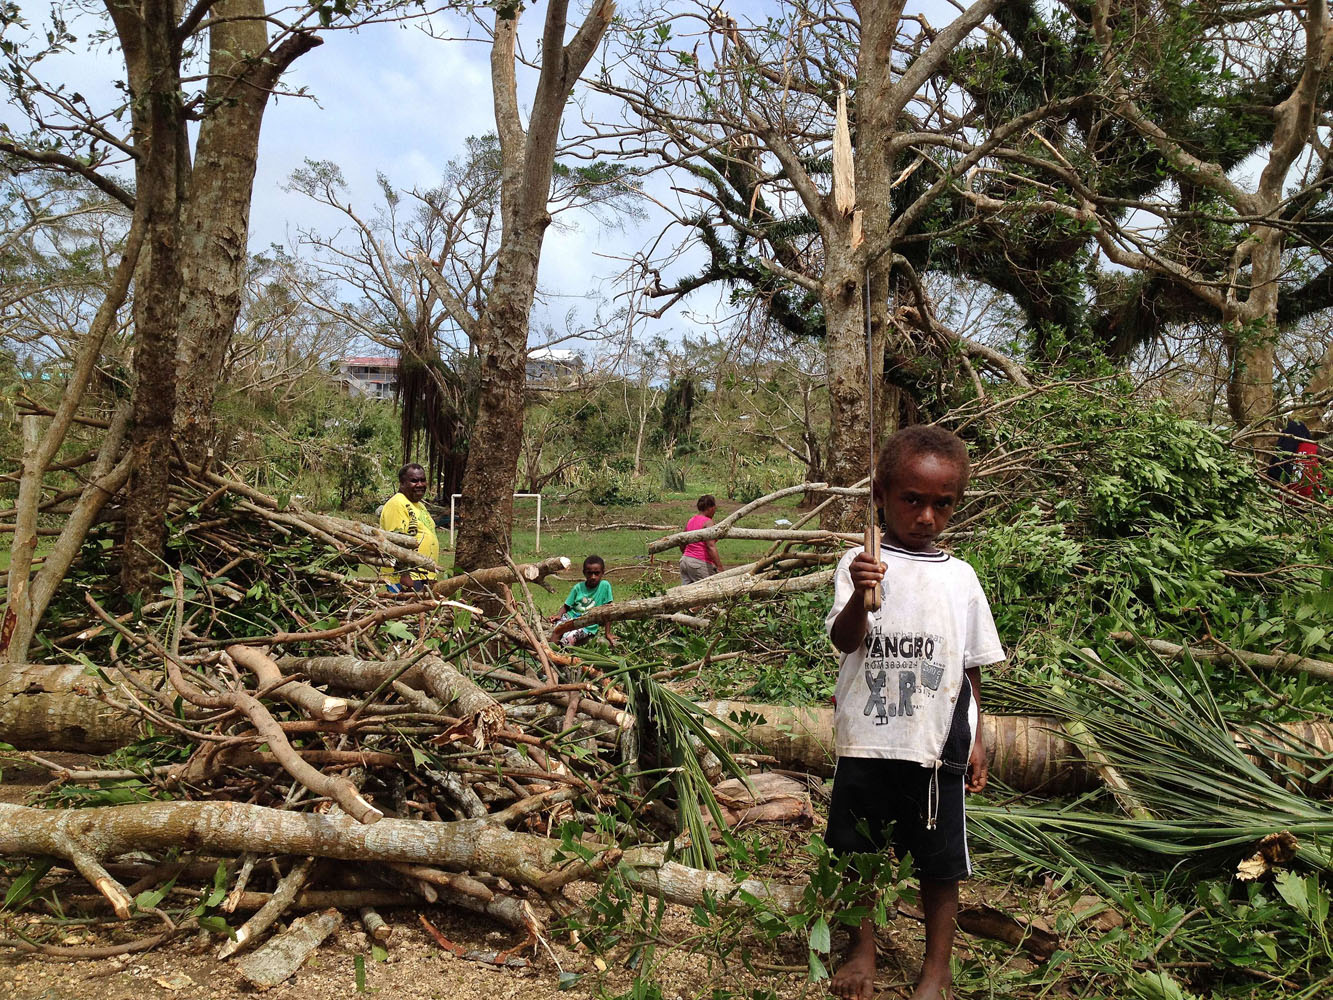 Cleaning up Cyclone Pam's destruction in Vanuatu